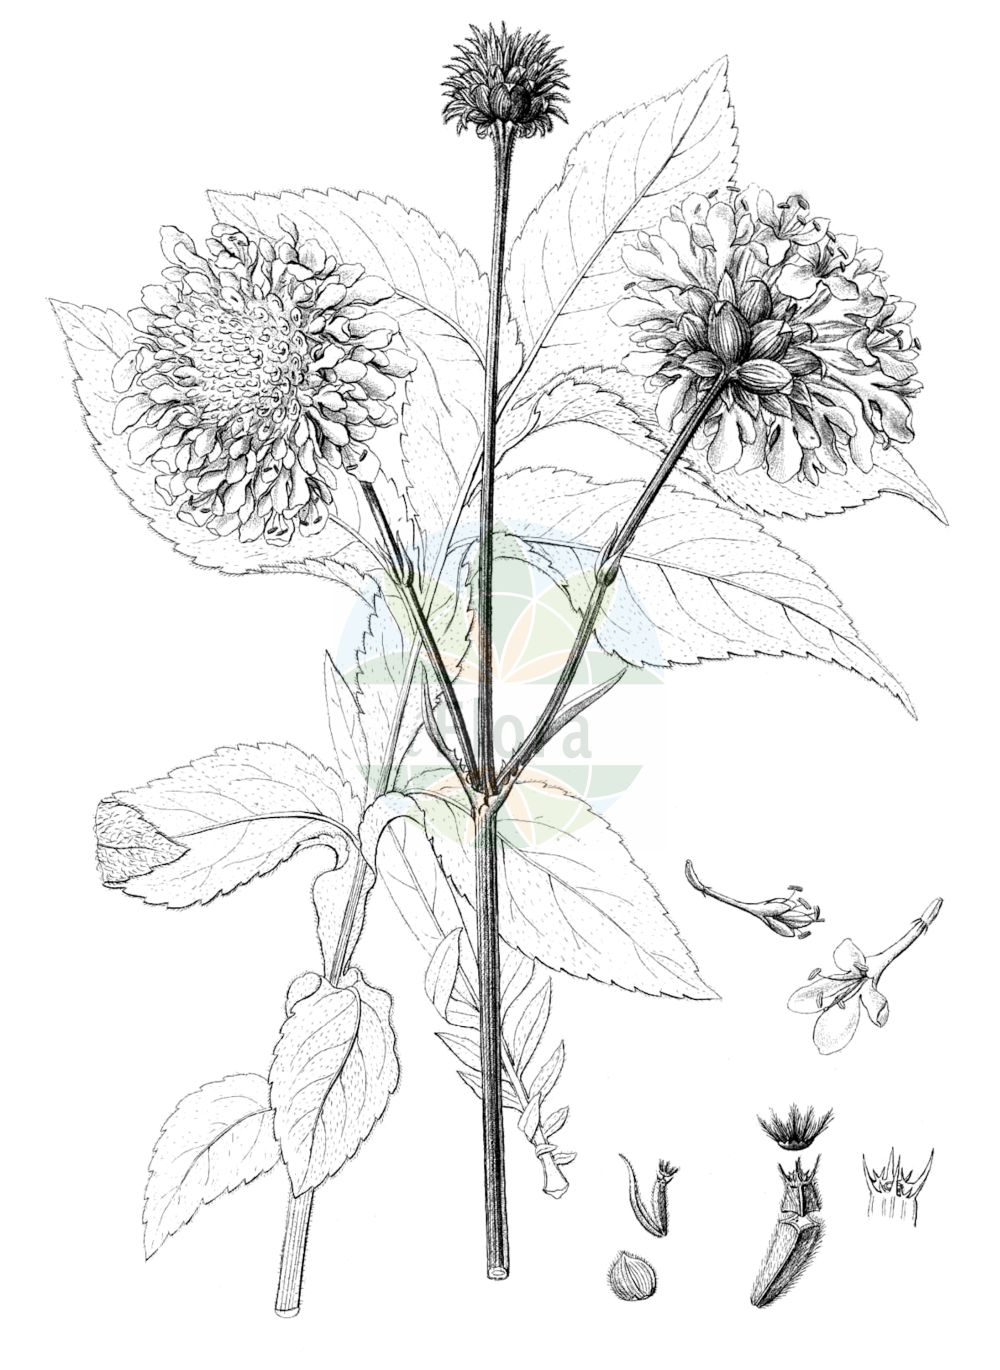 Historische Abbildung von Cephalaria gigantea. Das Bild zeigt Blatt, Bluete, Frucht und Same. ---- Historical Drawing of Cephalaria gigantea.The image is showing leaf, flower, fruit and seed.(Cephalaria gigantea,Cephalaria gigantea,Cephalaria tatarica,Scabiosa gigantea,Cephalaria,Caprifoliaceae,Geissblattgewaechse,Honeysuckle family,Blatt,Bluete,Frucht,Same,leaf,flower,fruit,seed,Reichenbach (1823-1832))